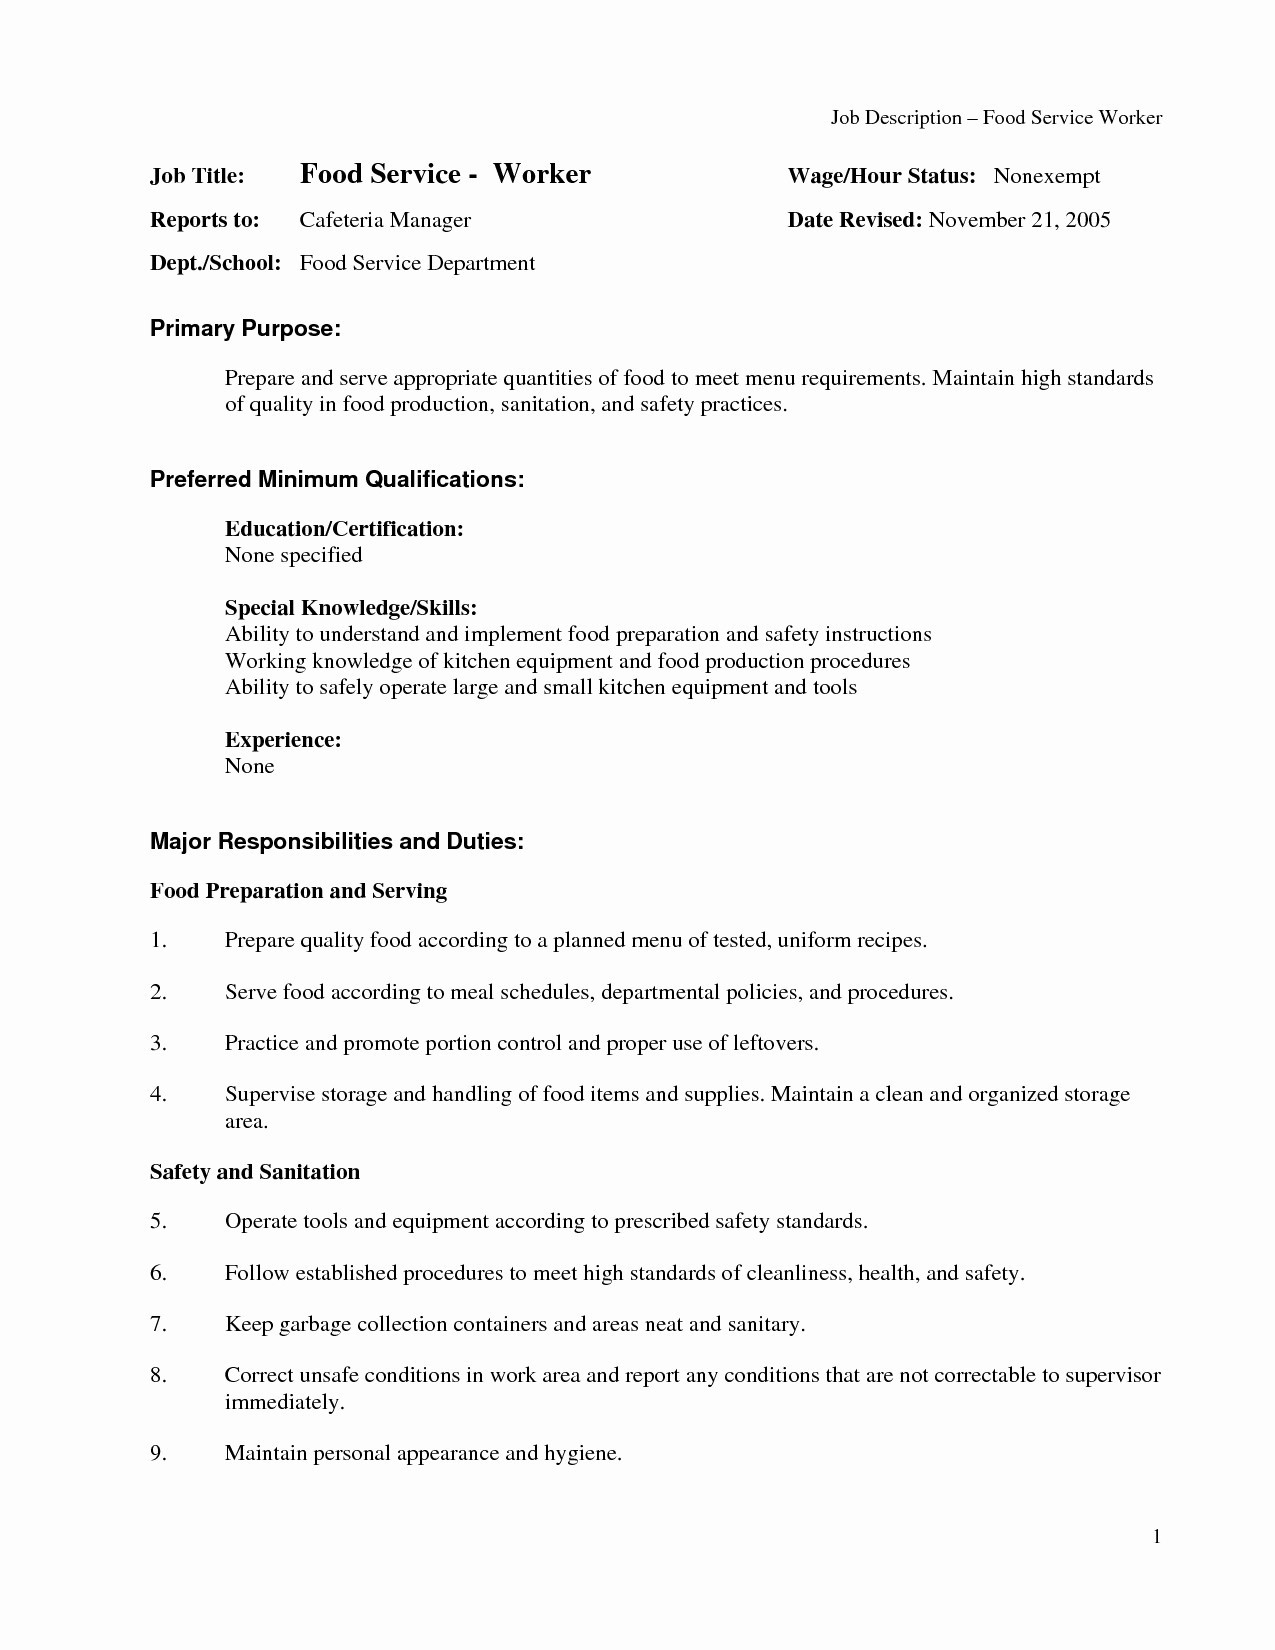 Fast Food Resume Objective - 18 Fast Food Resume Objective